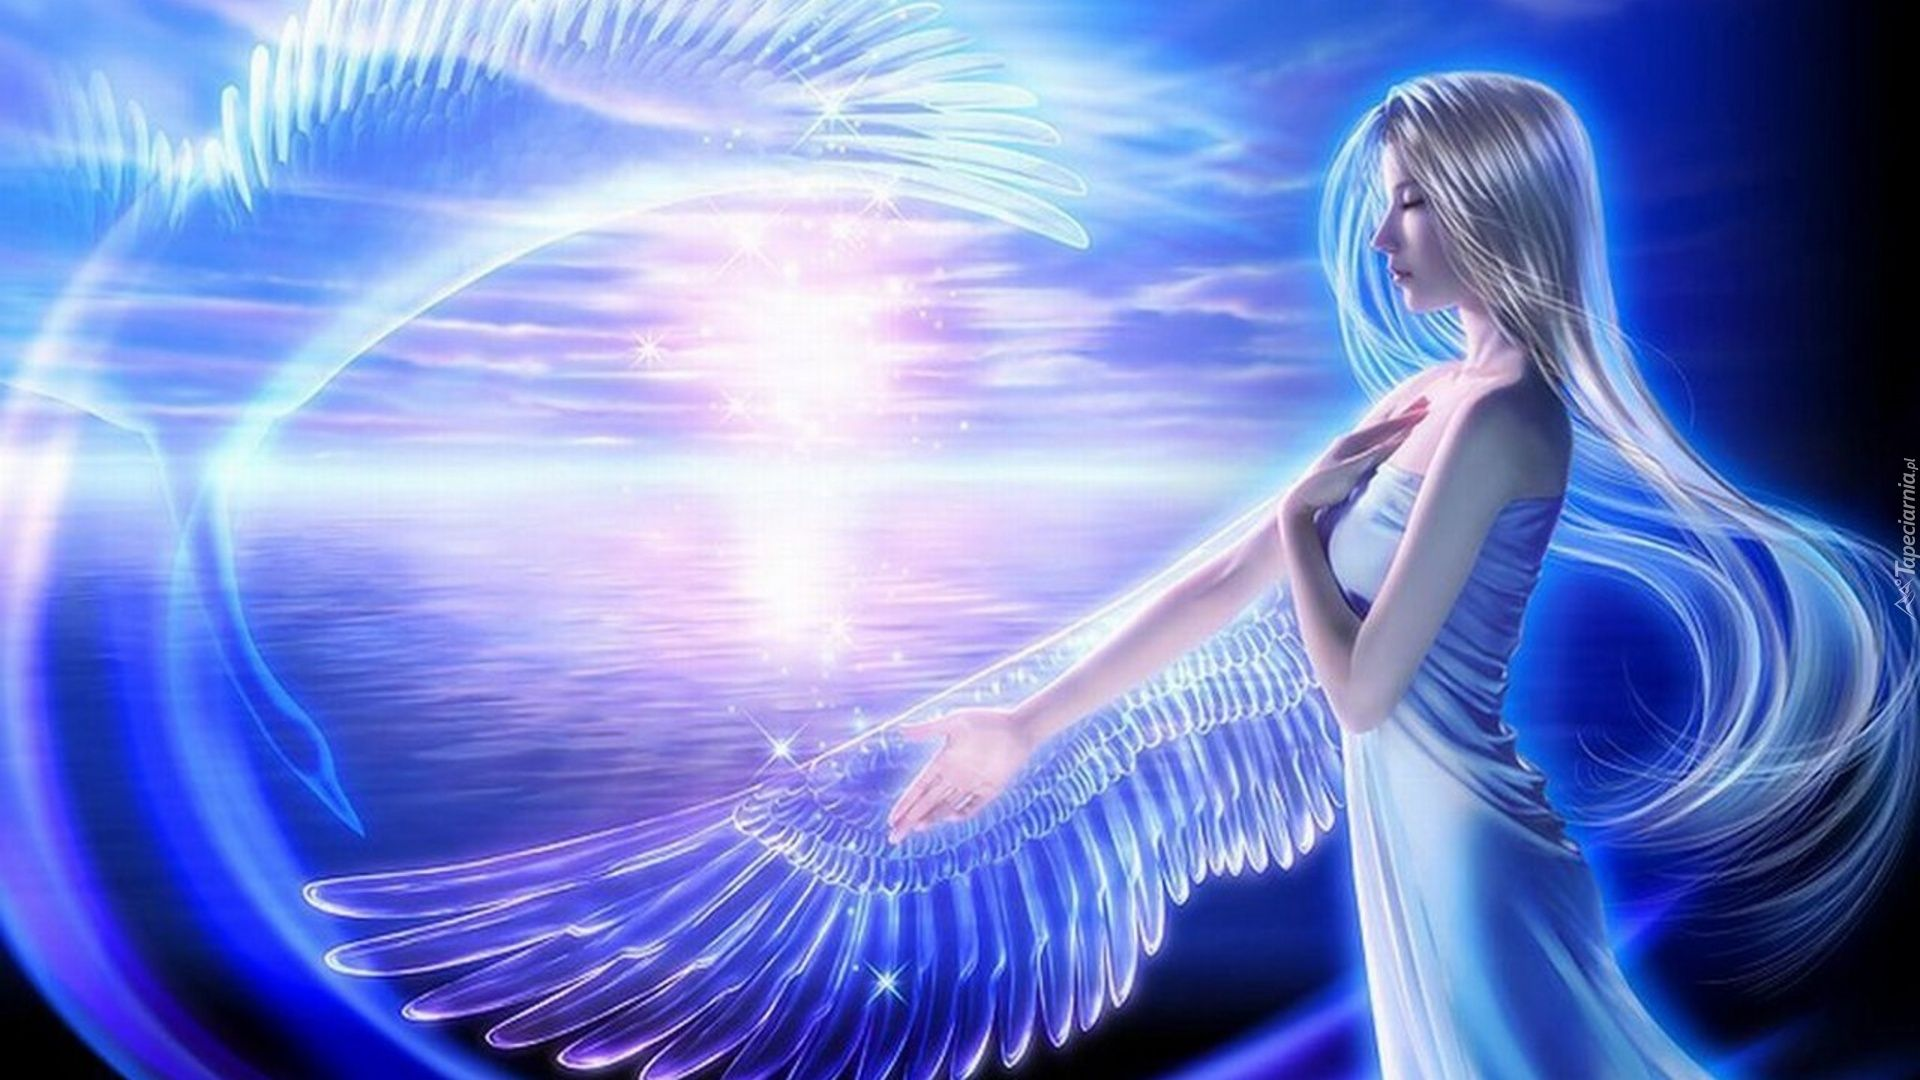 Beautiful Pictures With The Angels Of Soul